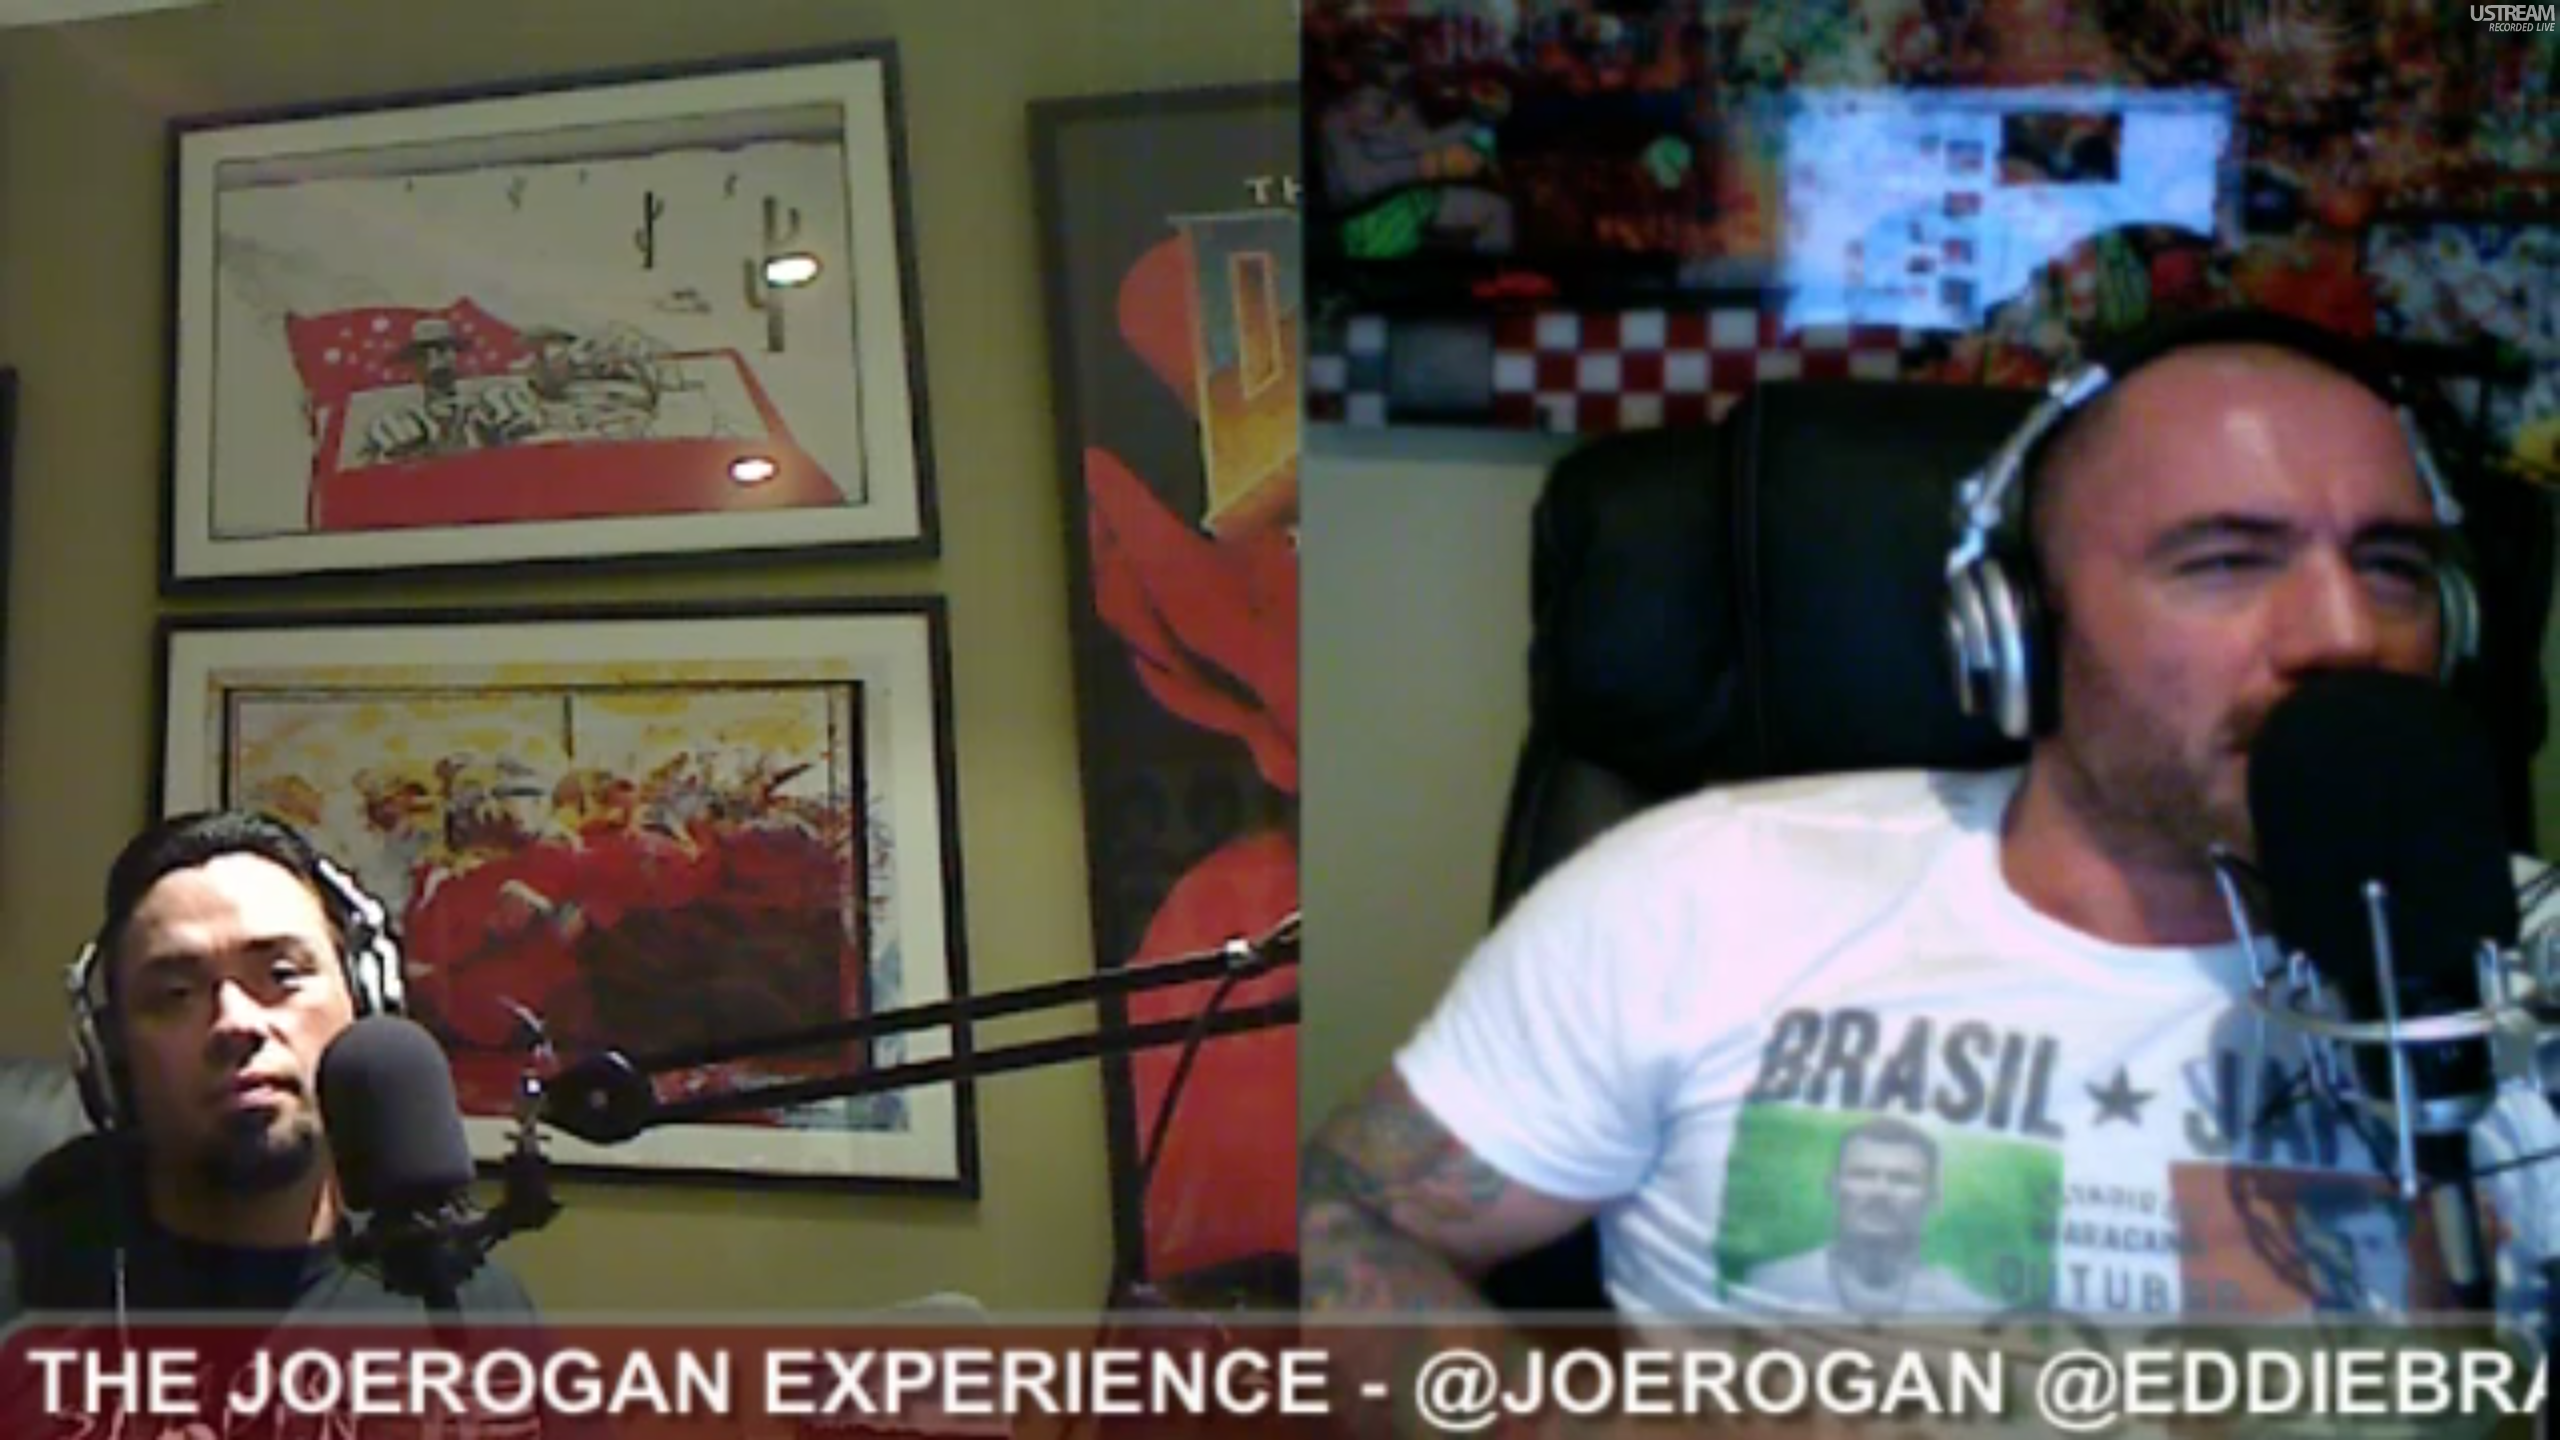 The Joe Rogan Experience #213 - Eddie Bravo